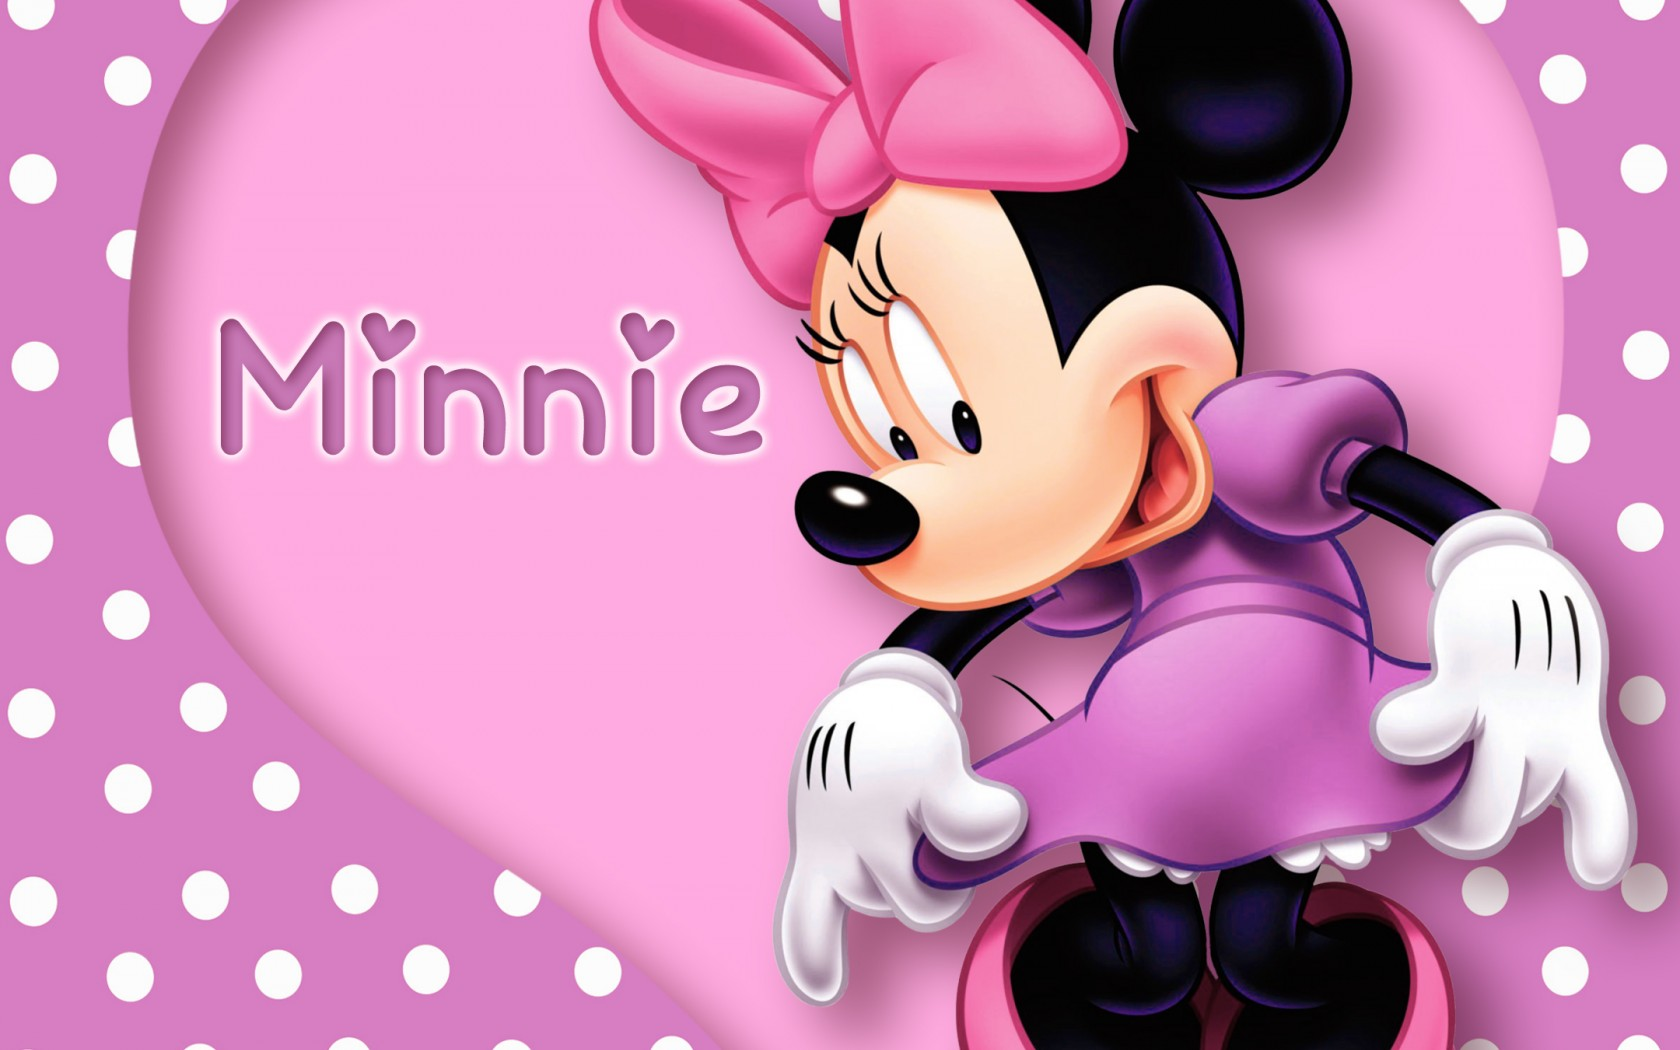 Minnie Mouse Wallpapers, Pictures, Images